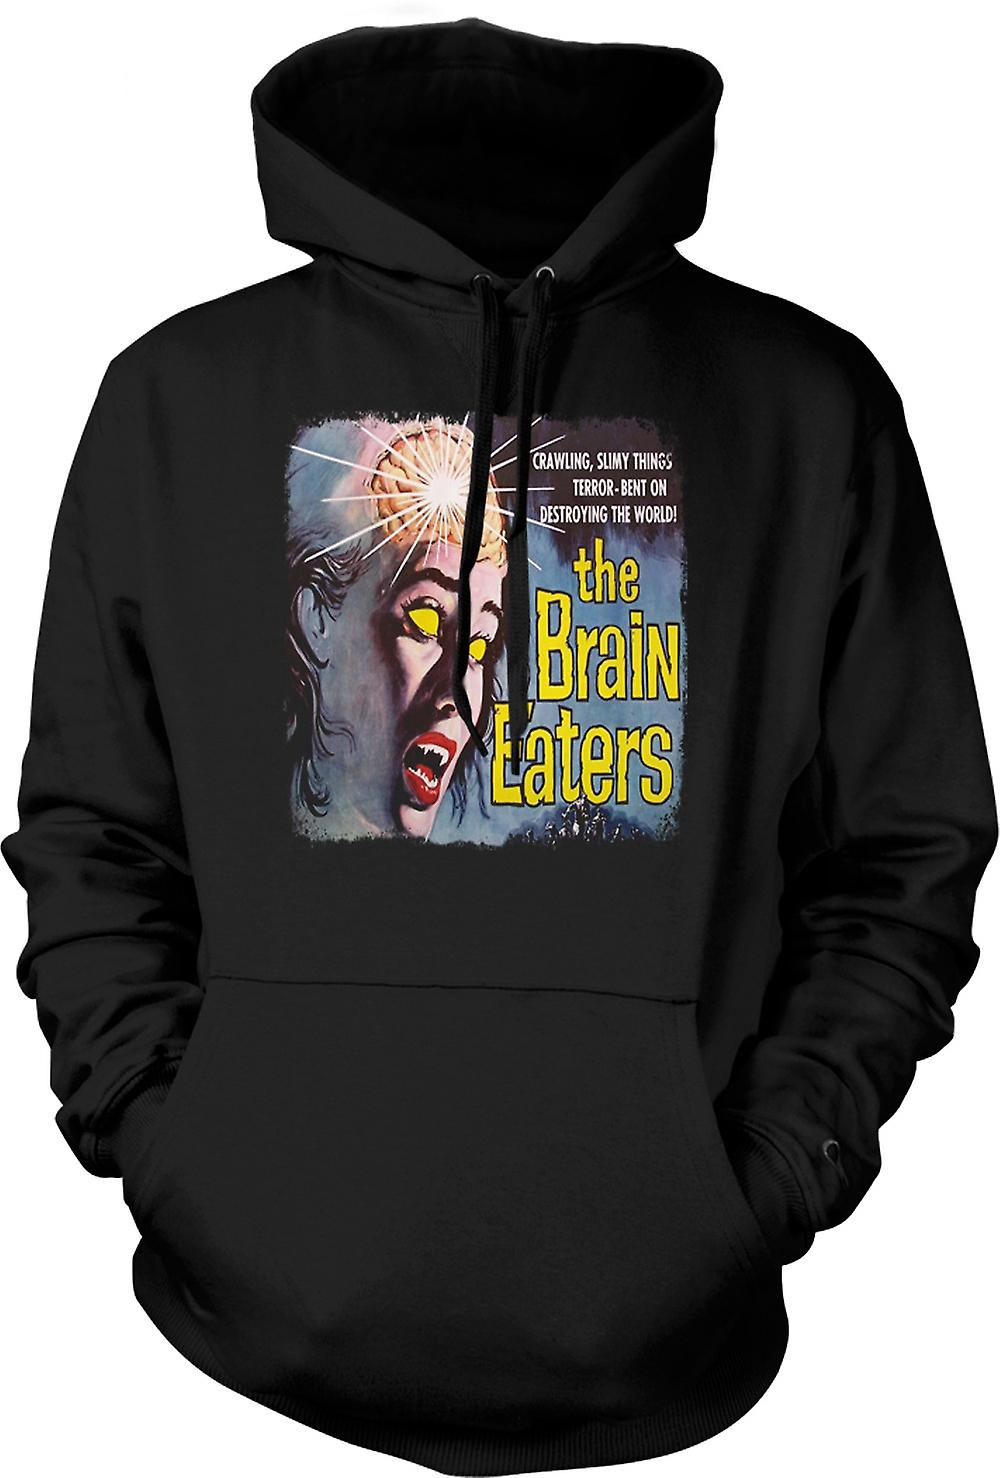 Mens Hoodie - The Brain Eaters - Horror - B Movie